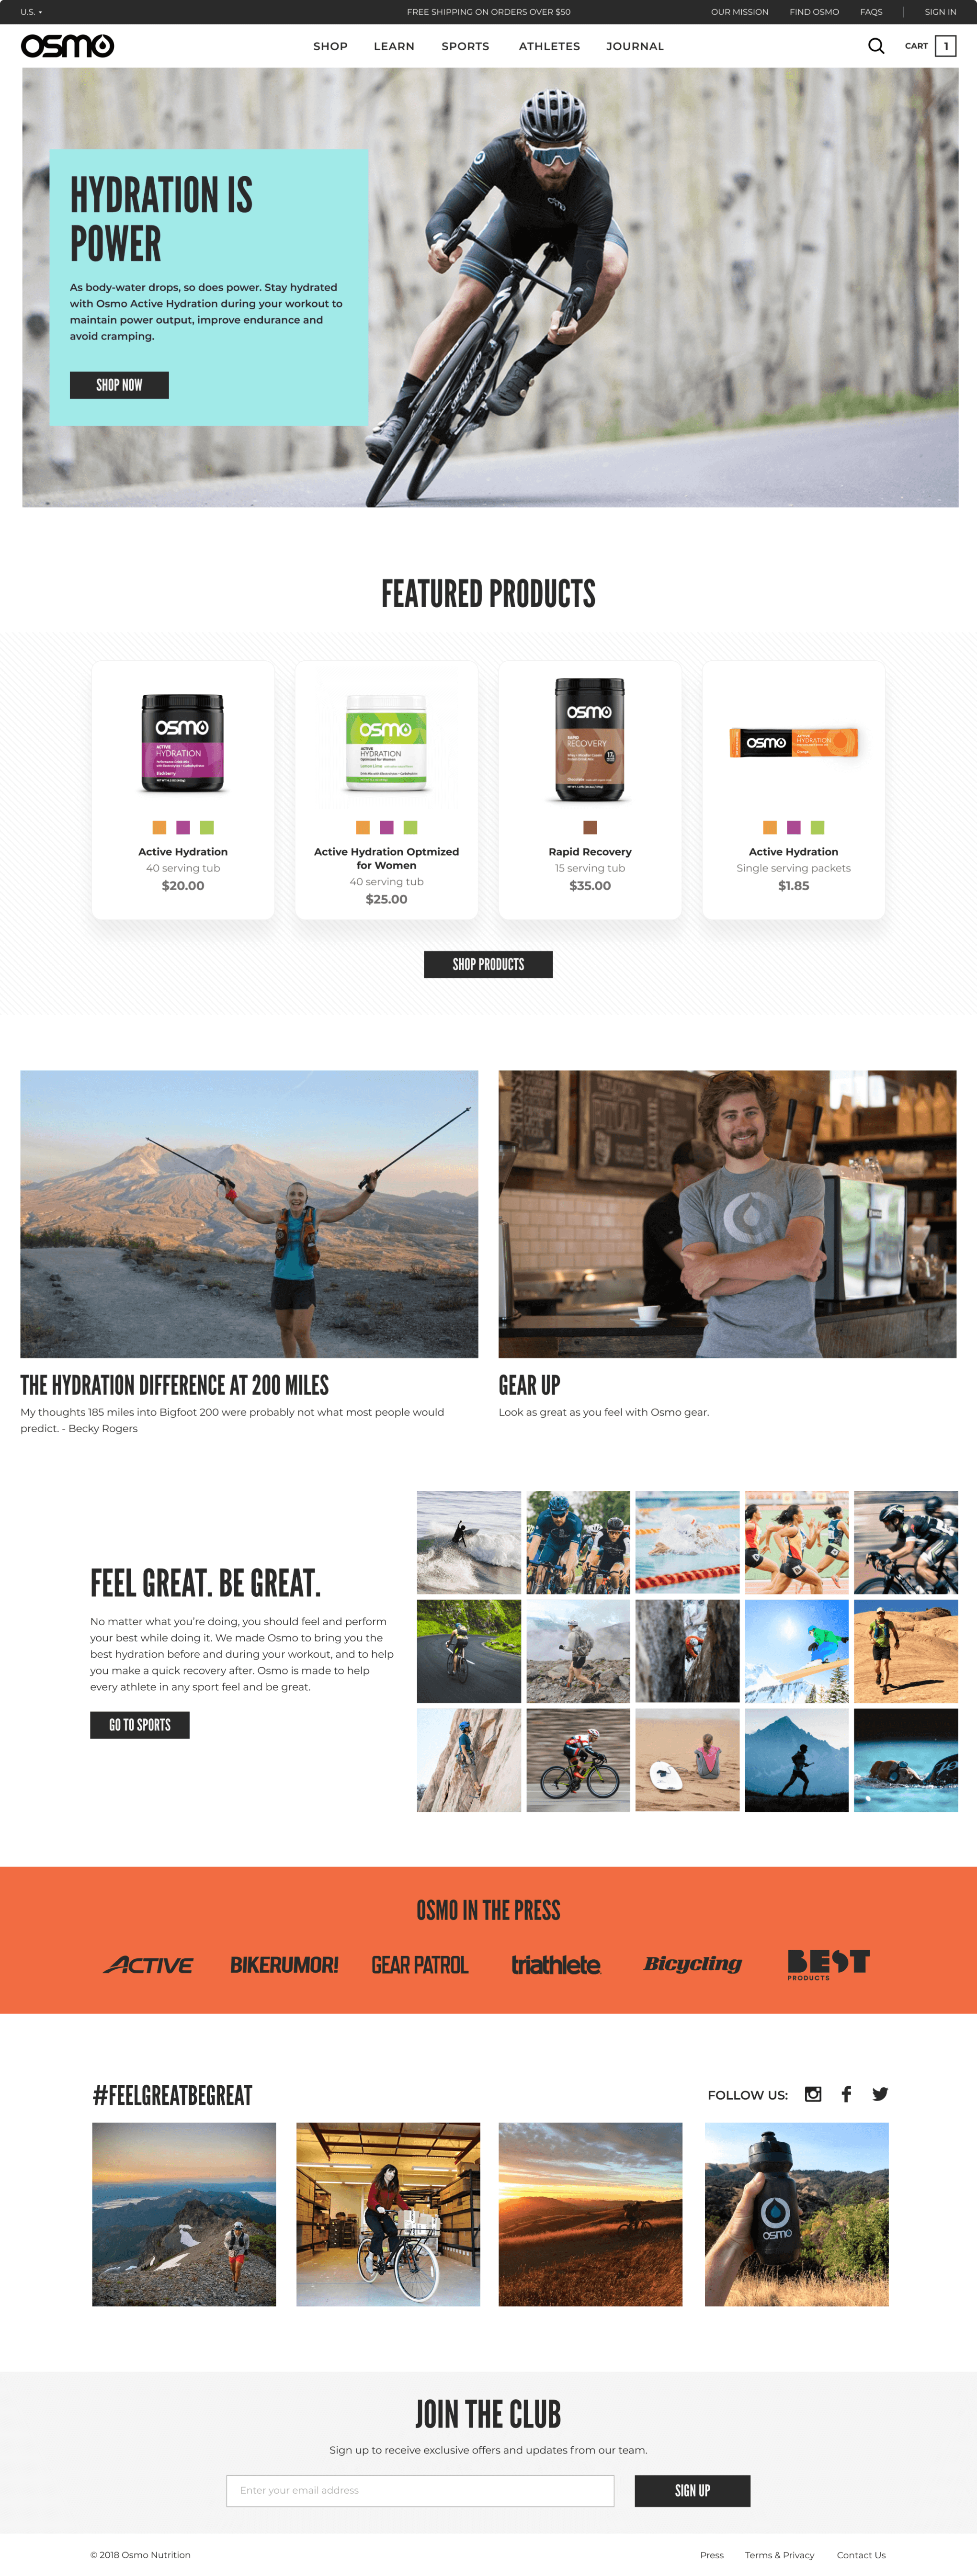 The final design for the home page of Osmo's website features four products and pro rider Peter Sagan.